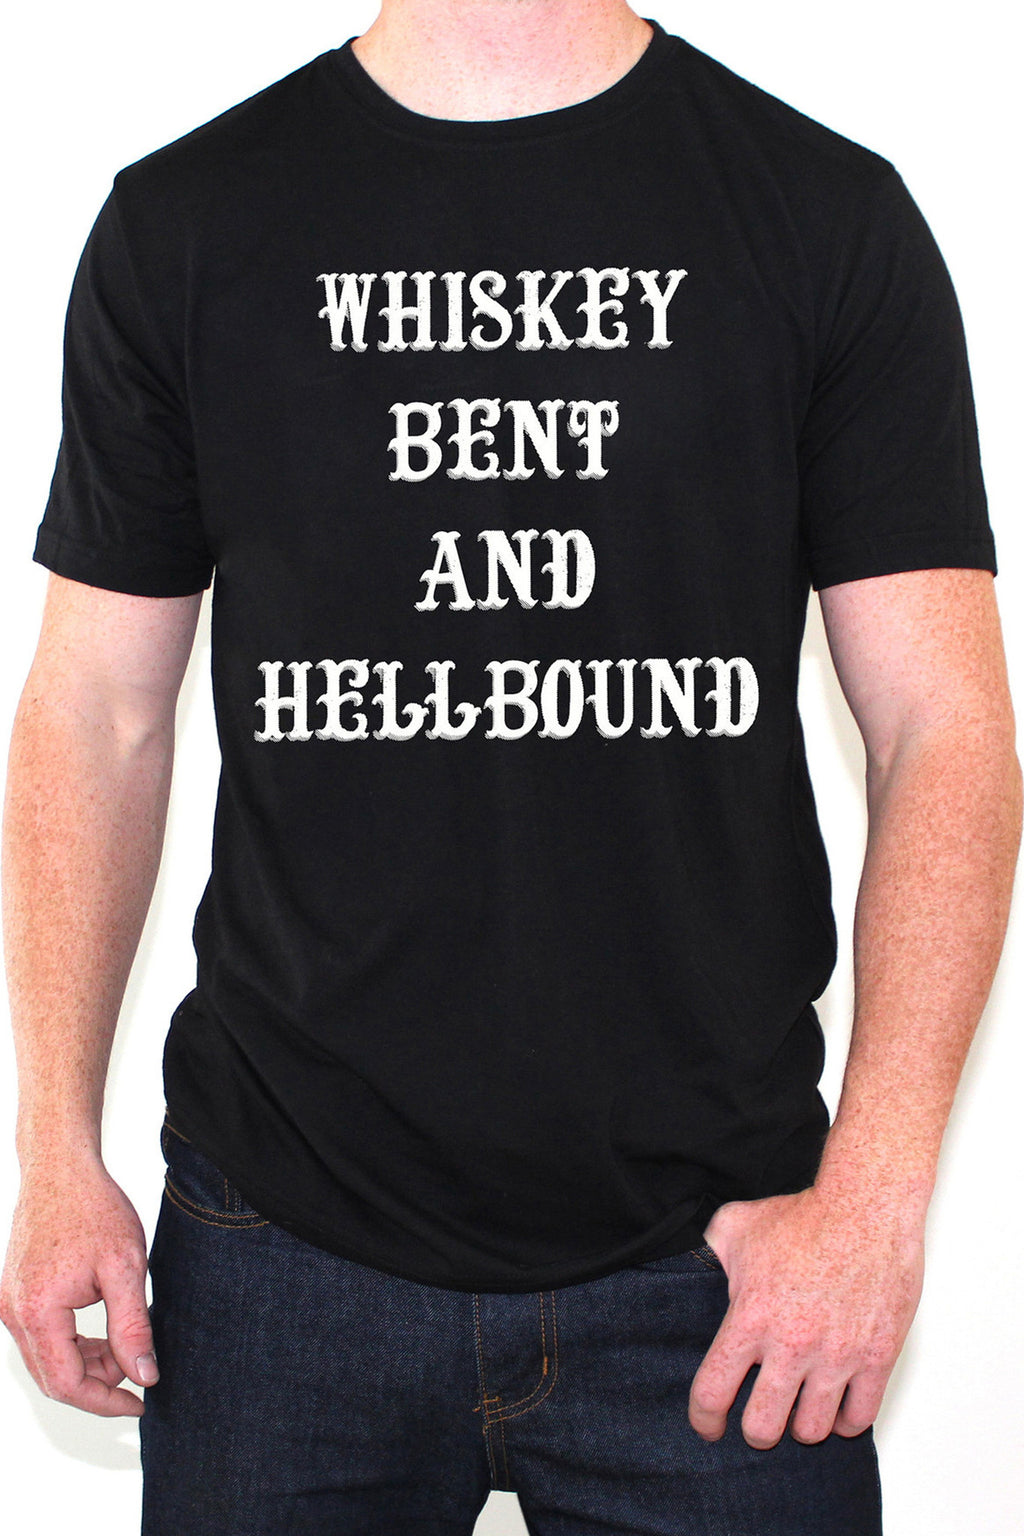 Whiskey Bent and Hellbound Black and White Tee